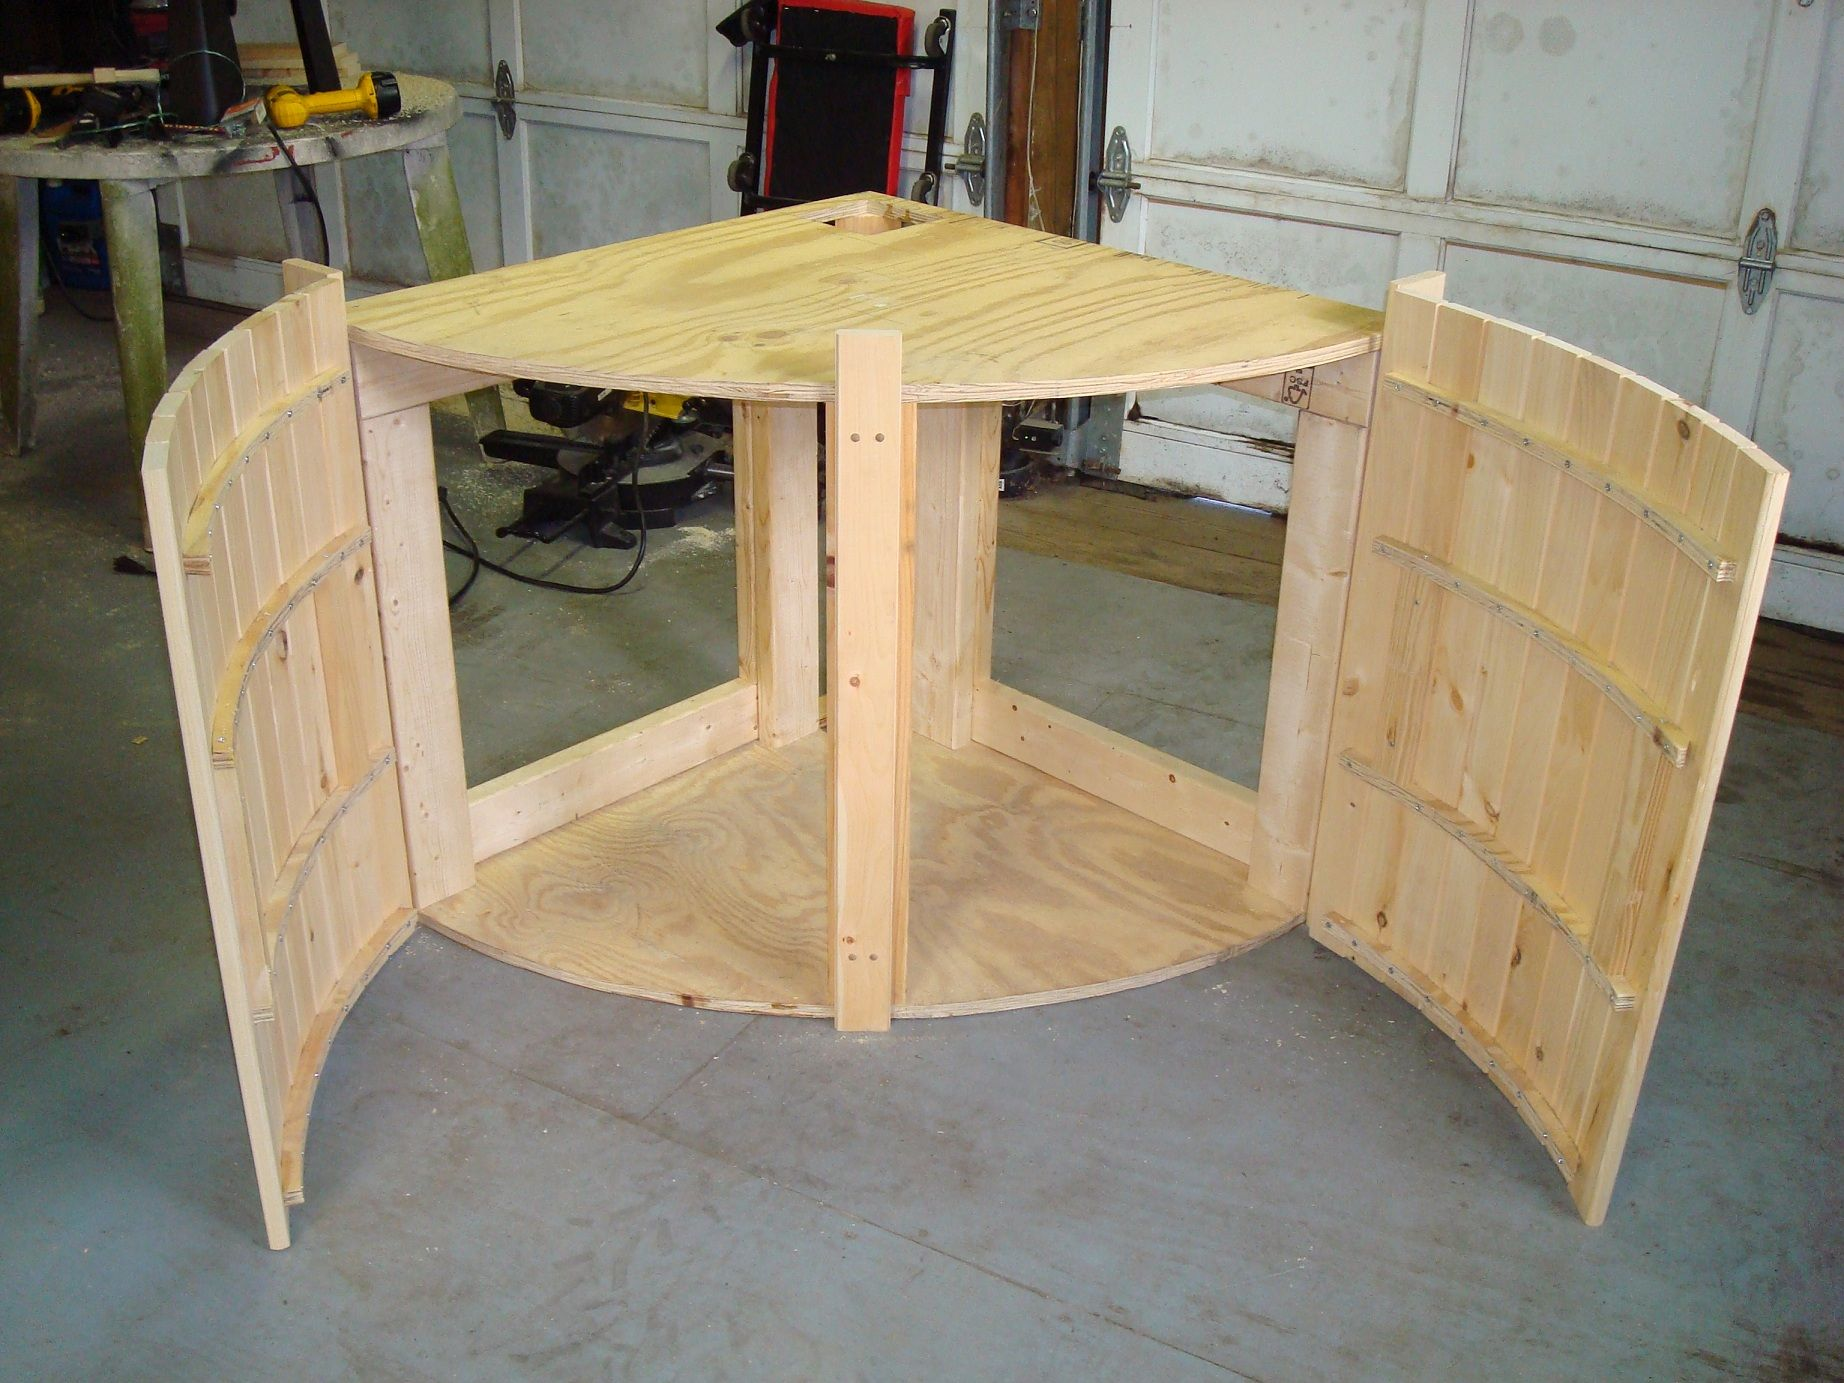 Diy stands template and calculator page 92 reef for Building a fish tank stand